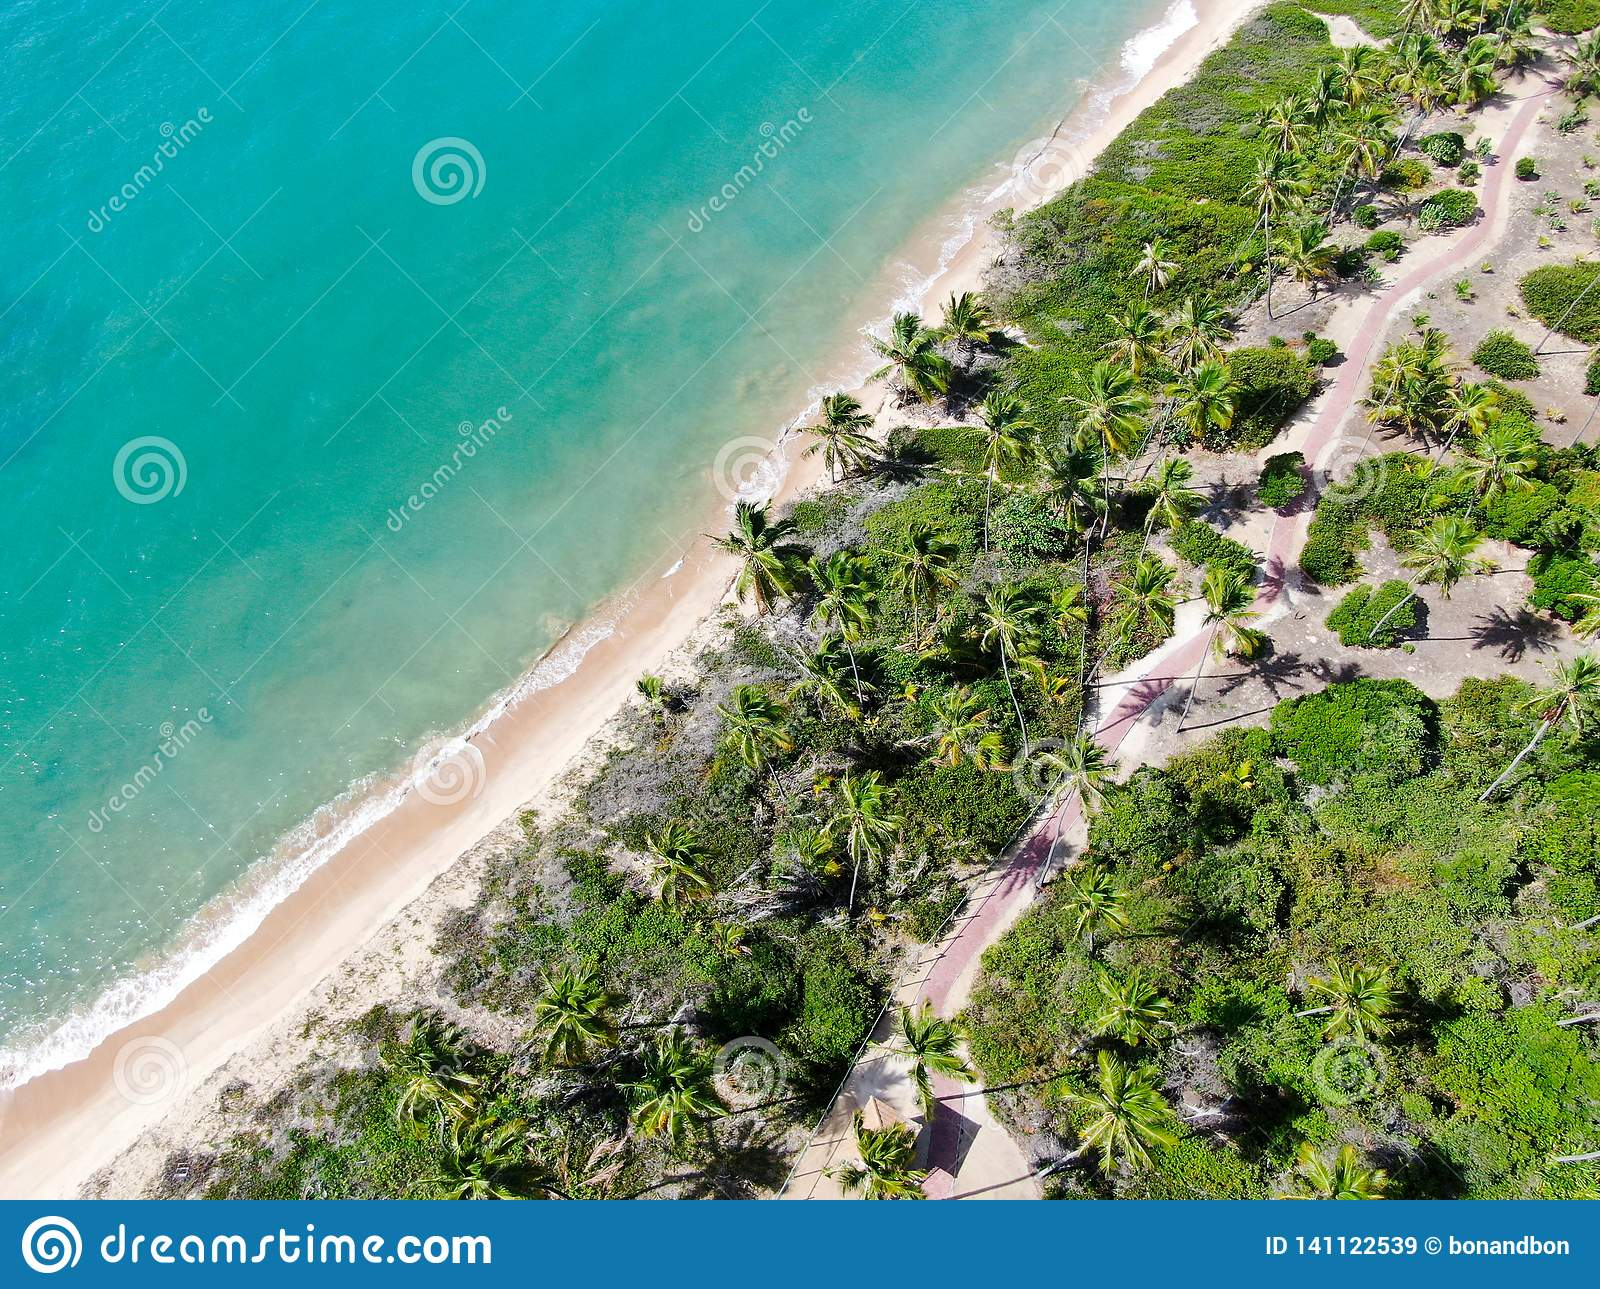 Aerial top view of tropical white sand beach and turquoise clear sea water with small waves and palm trees background.